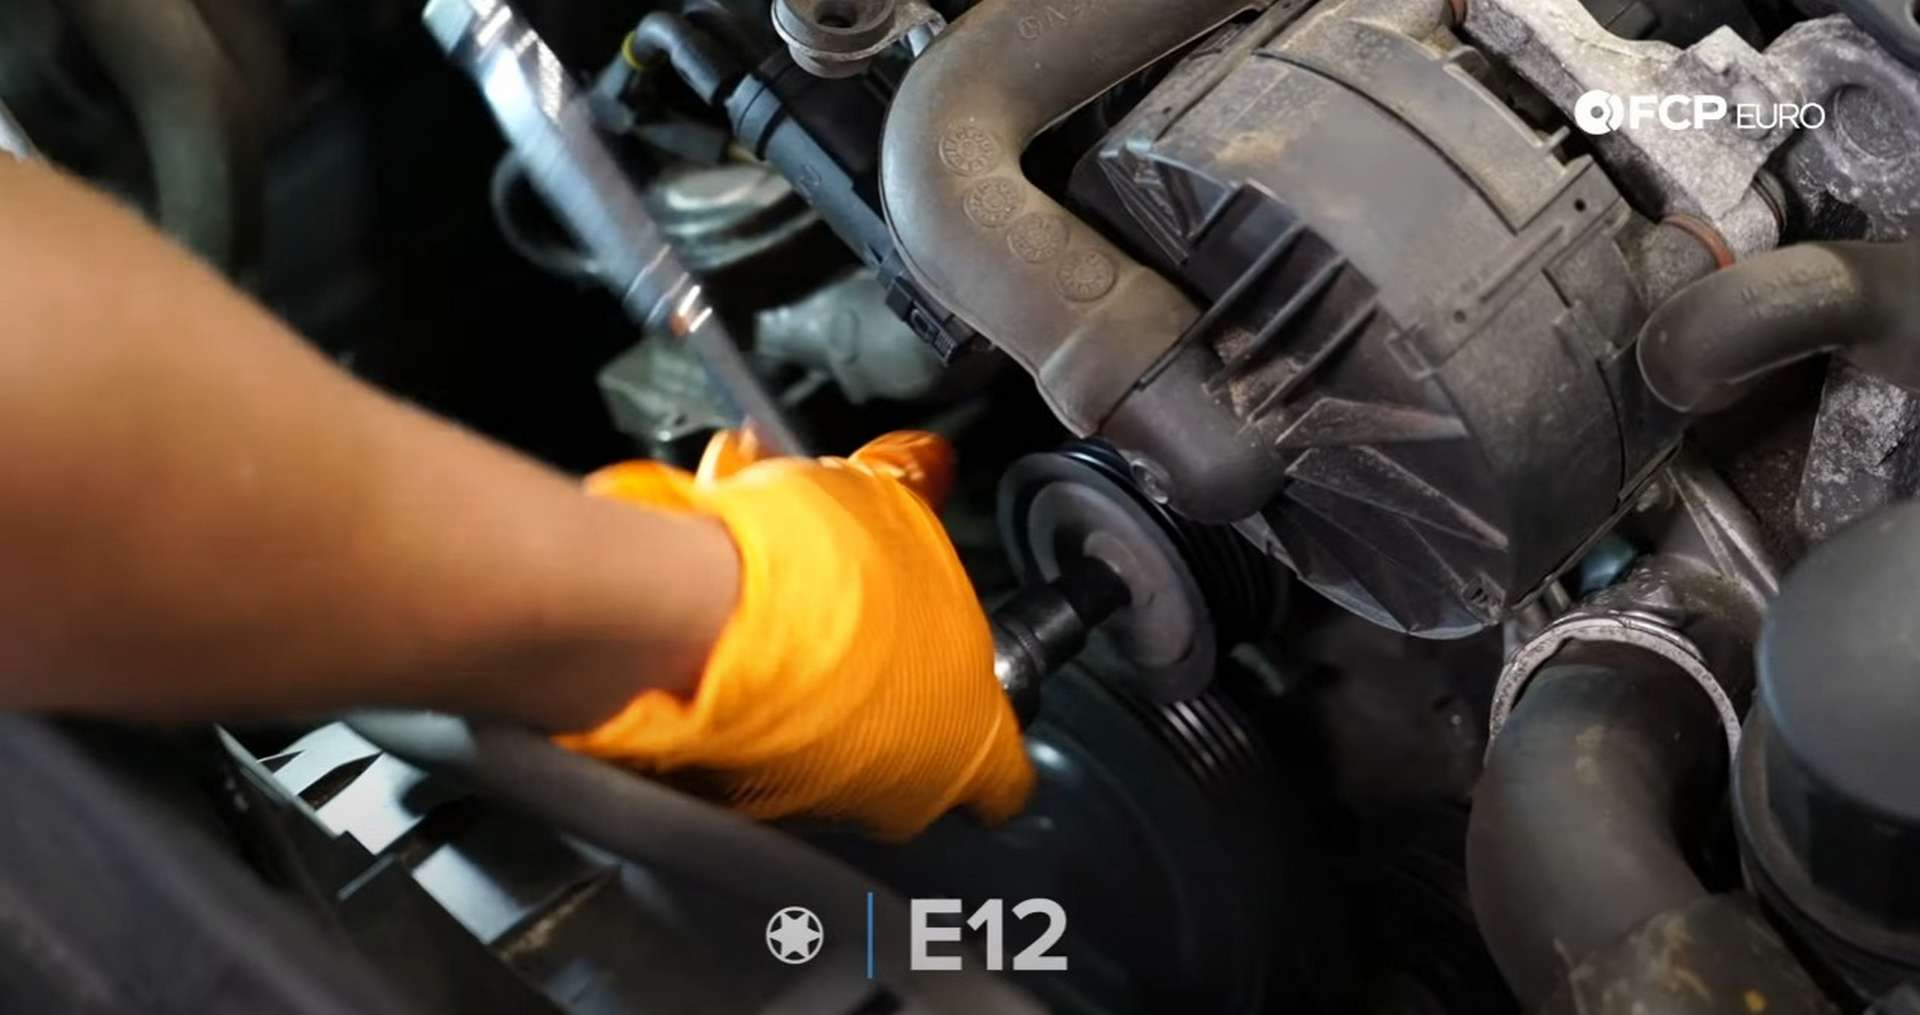 DIY Mercedes W212/204 Alternator and Drive Belt Replacement removing the water pump idler pulley